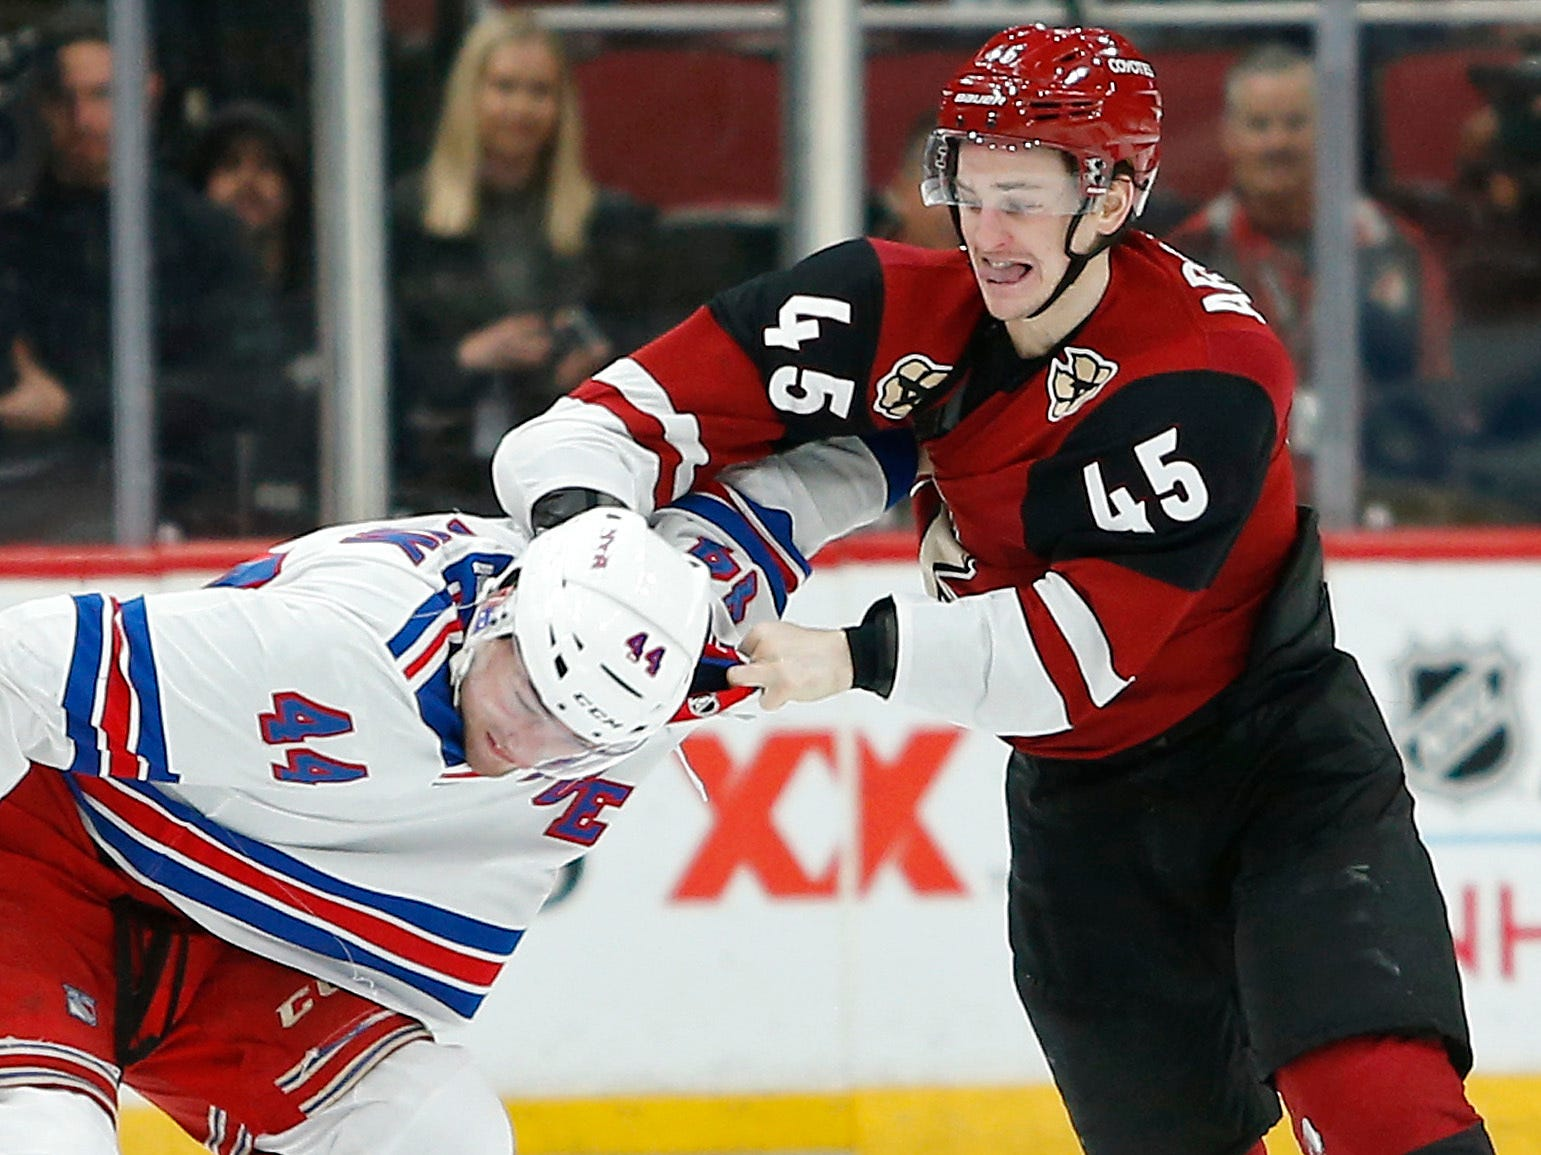 Jan. 6: Arizona Coyotes' Josh Archibald vs. New York Rangers' Neal Pionk